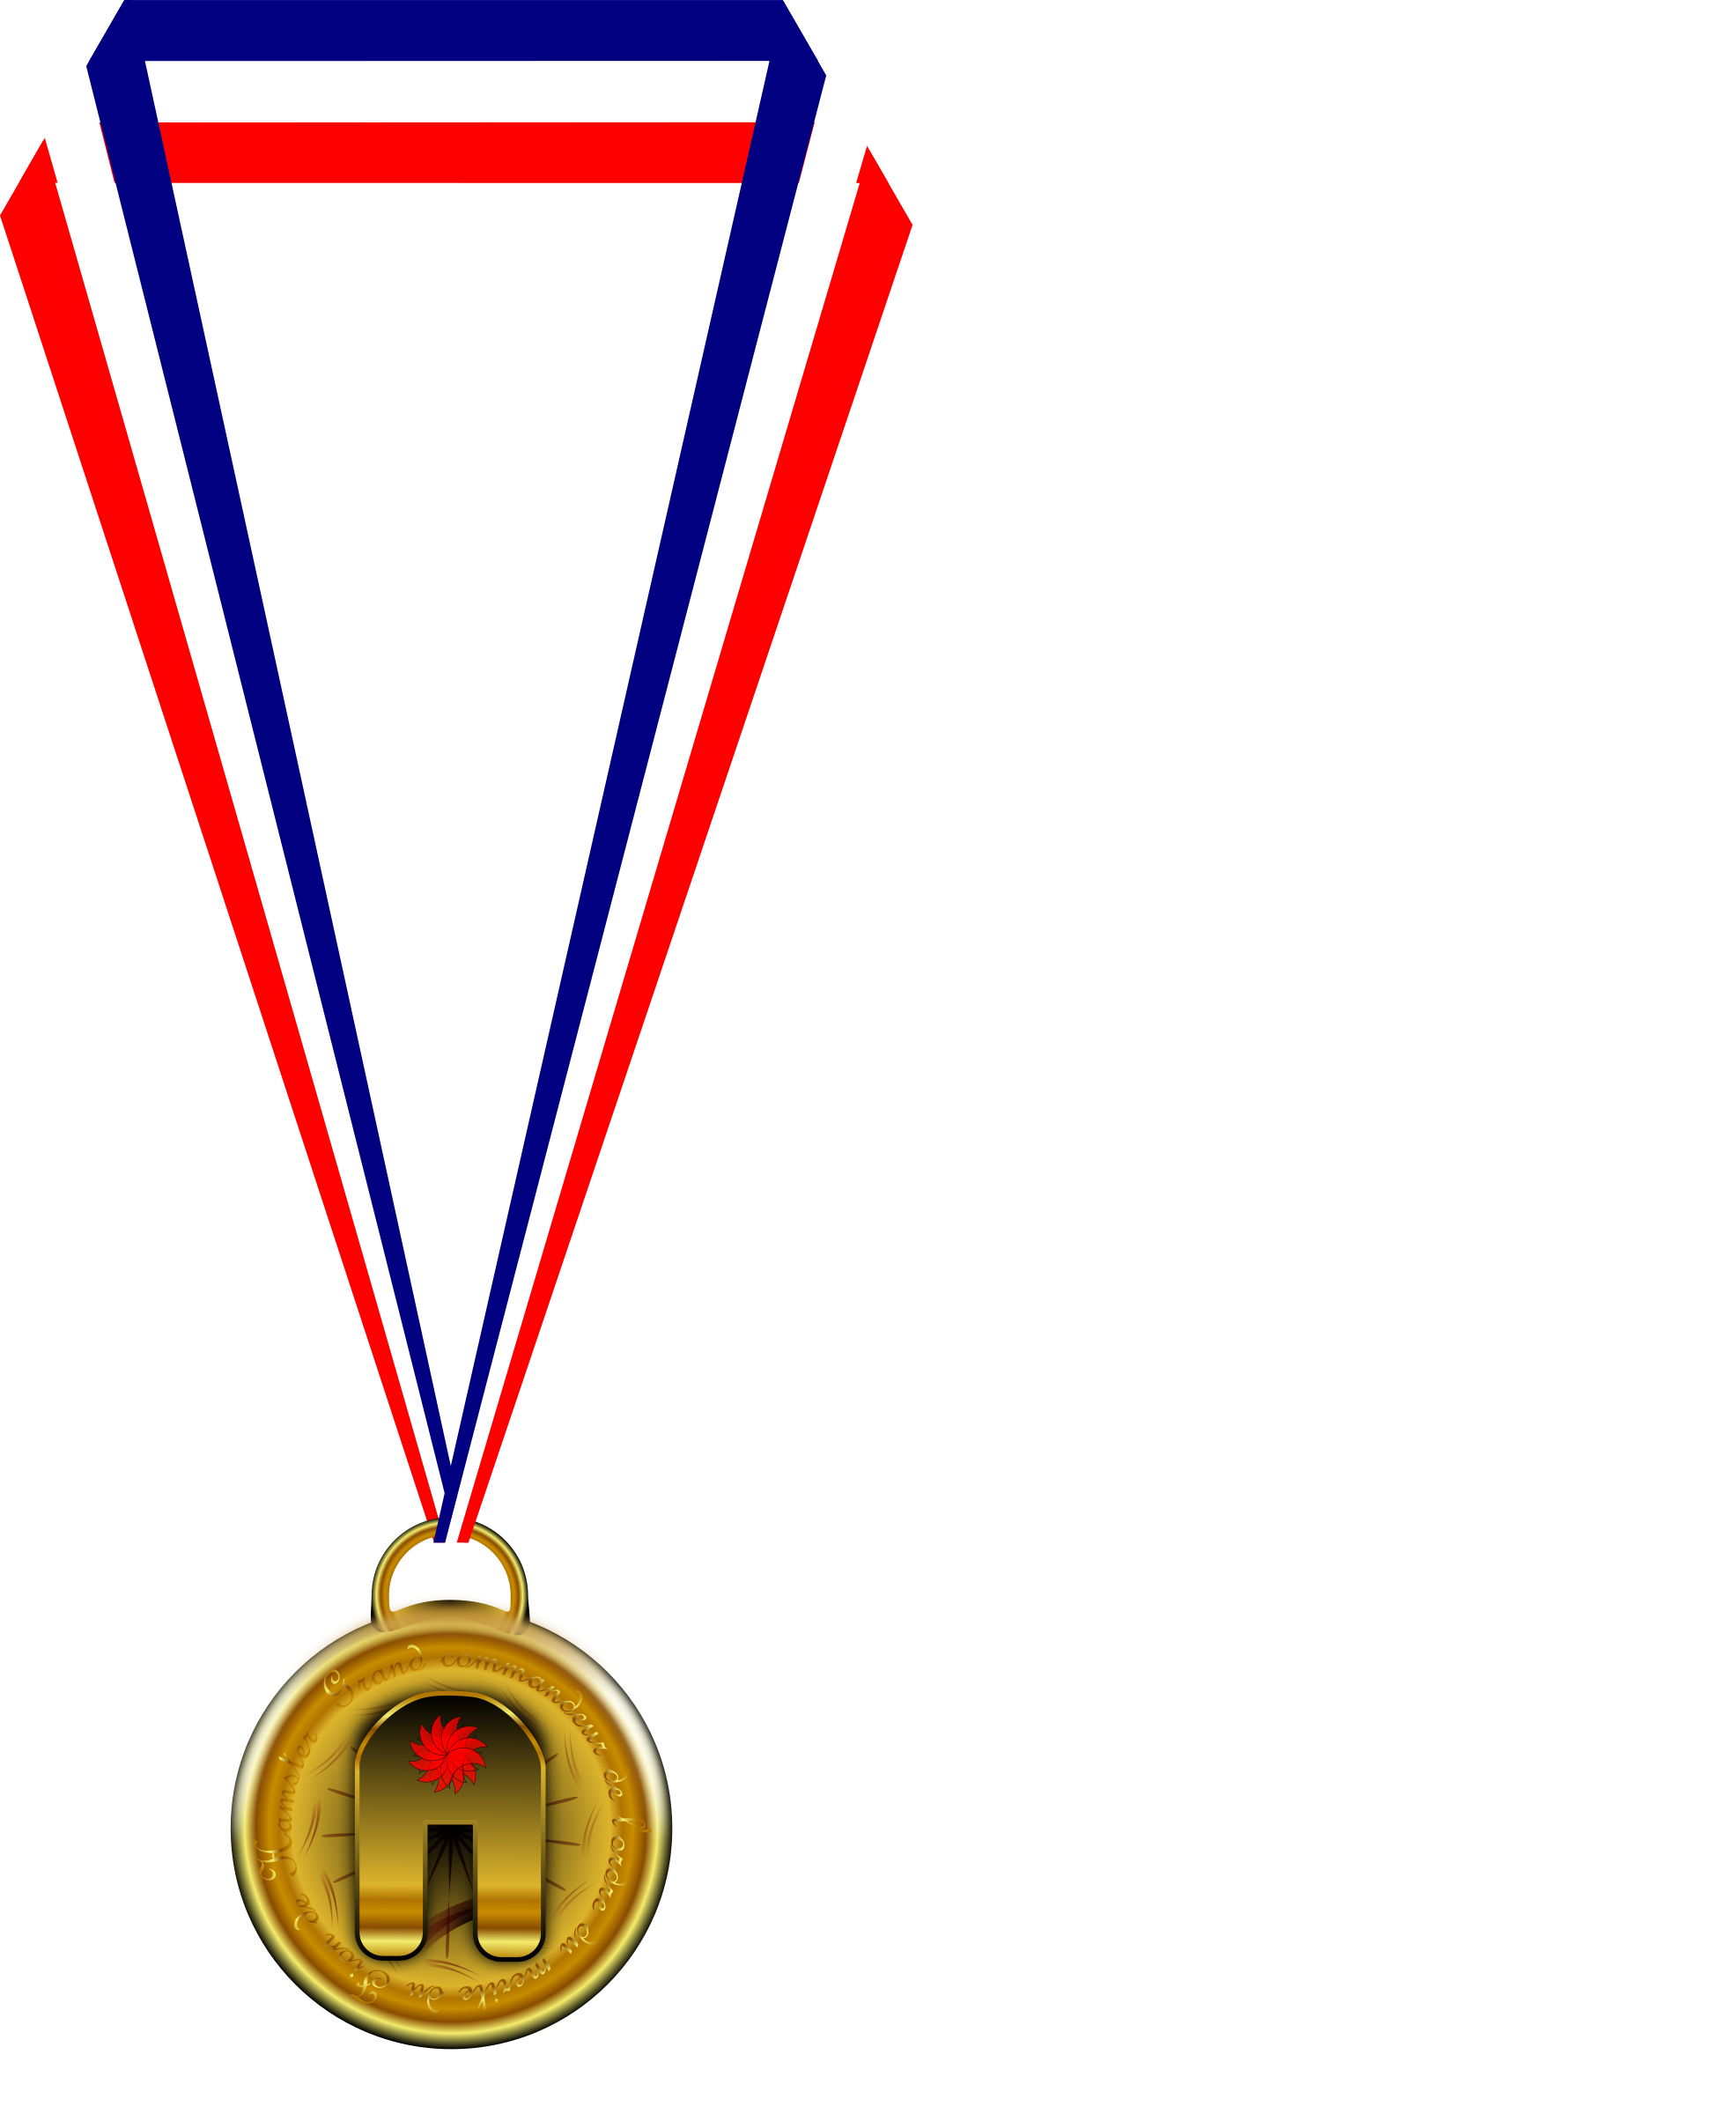 clip art medals free - photo #17